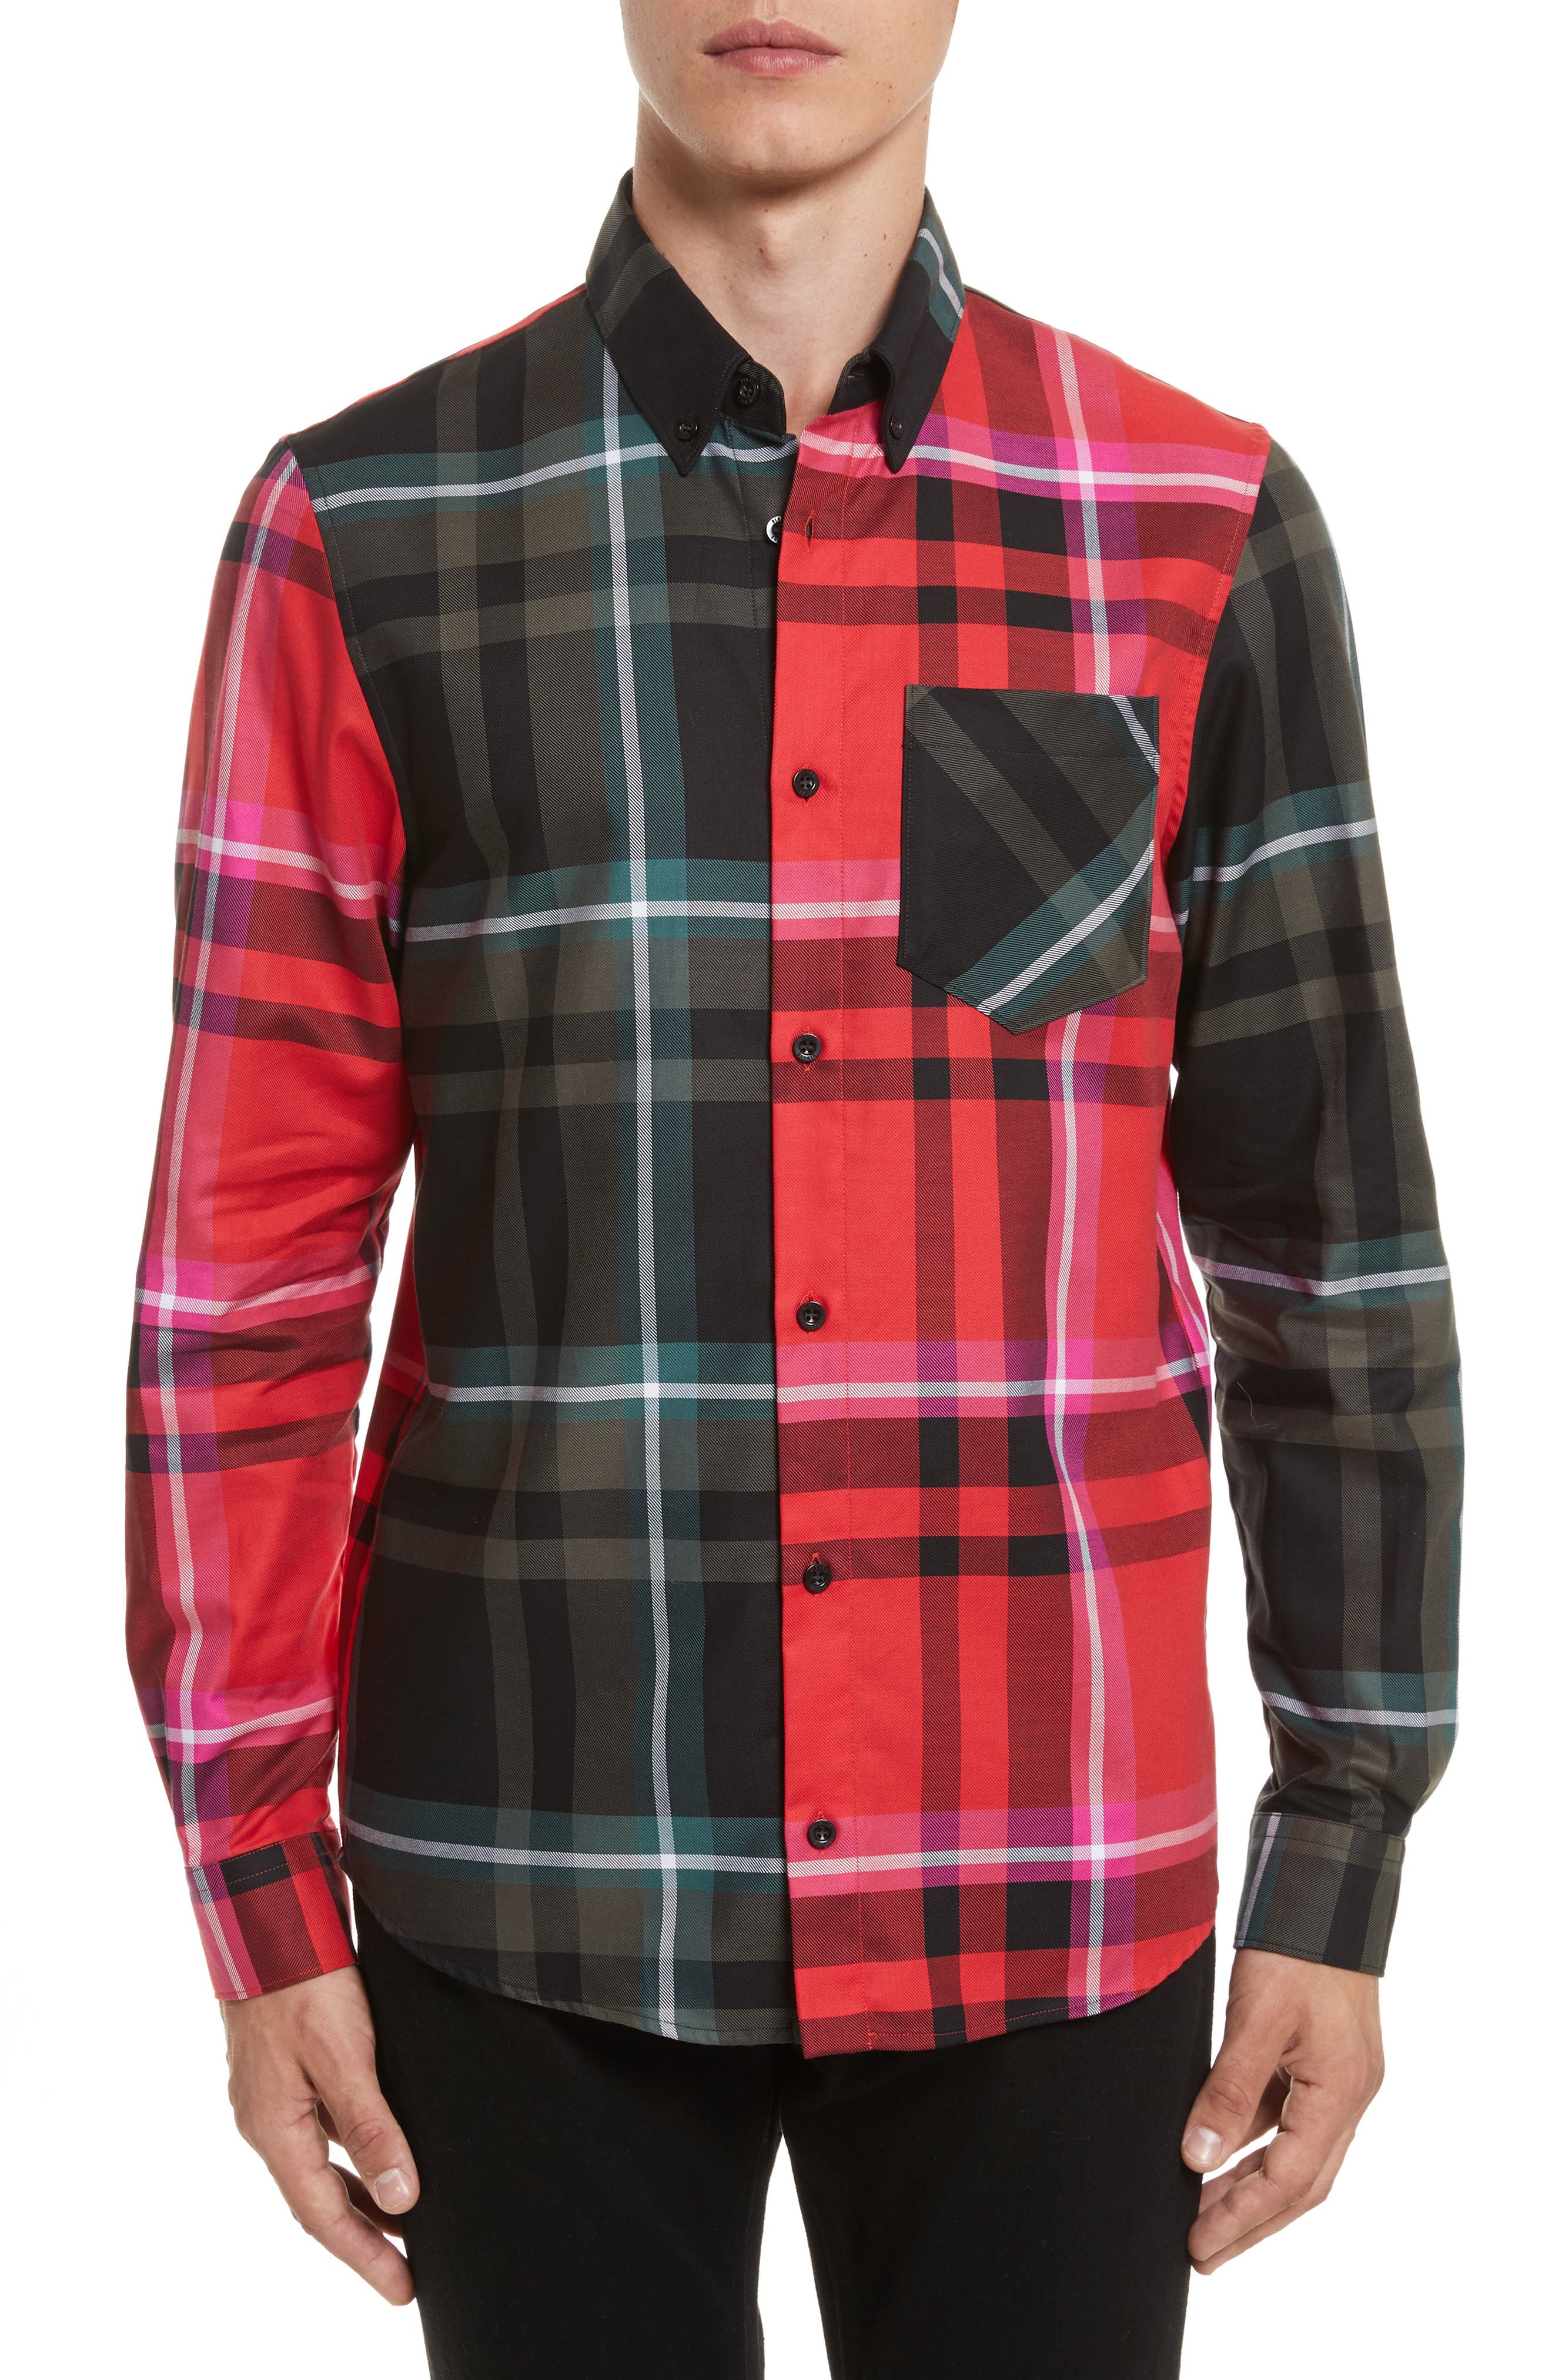 VERSUS by Versace Plaid Woven Shirt,                             Main thumbnail 1, color,                             Red Multi